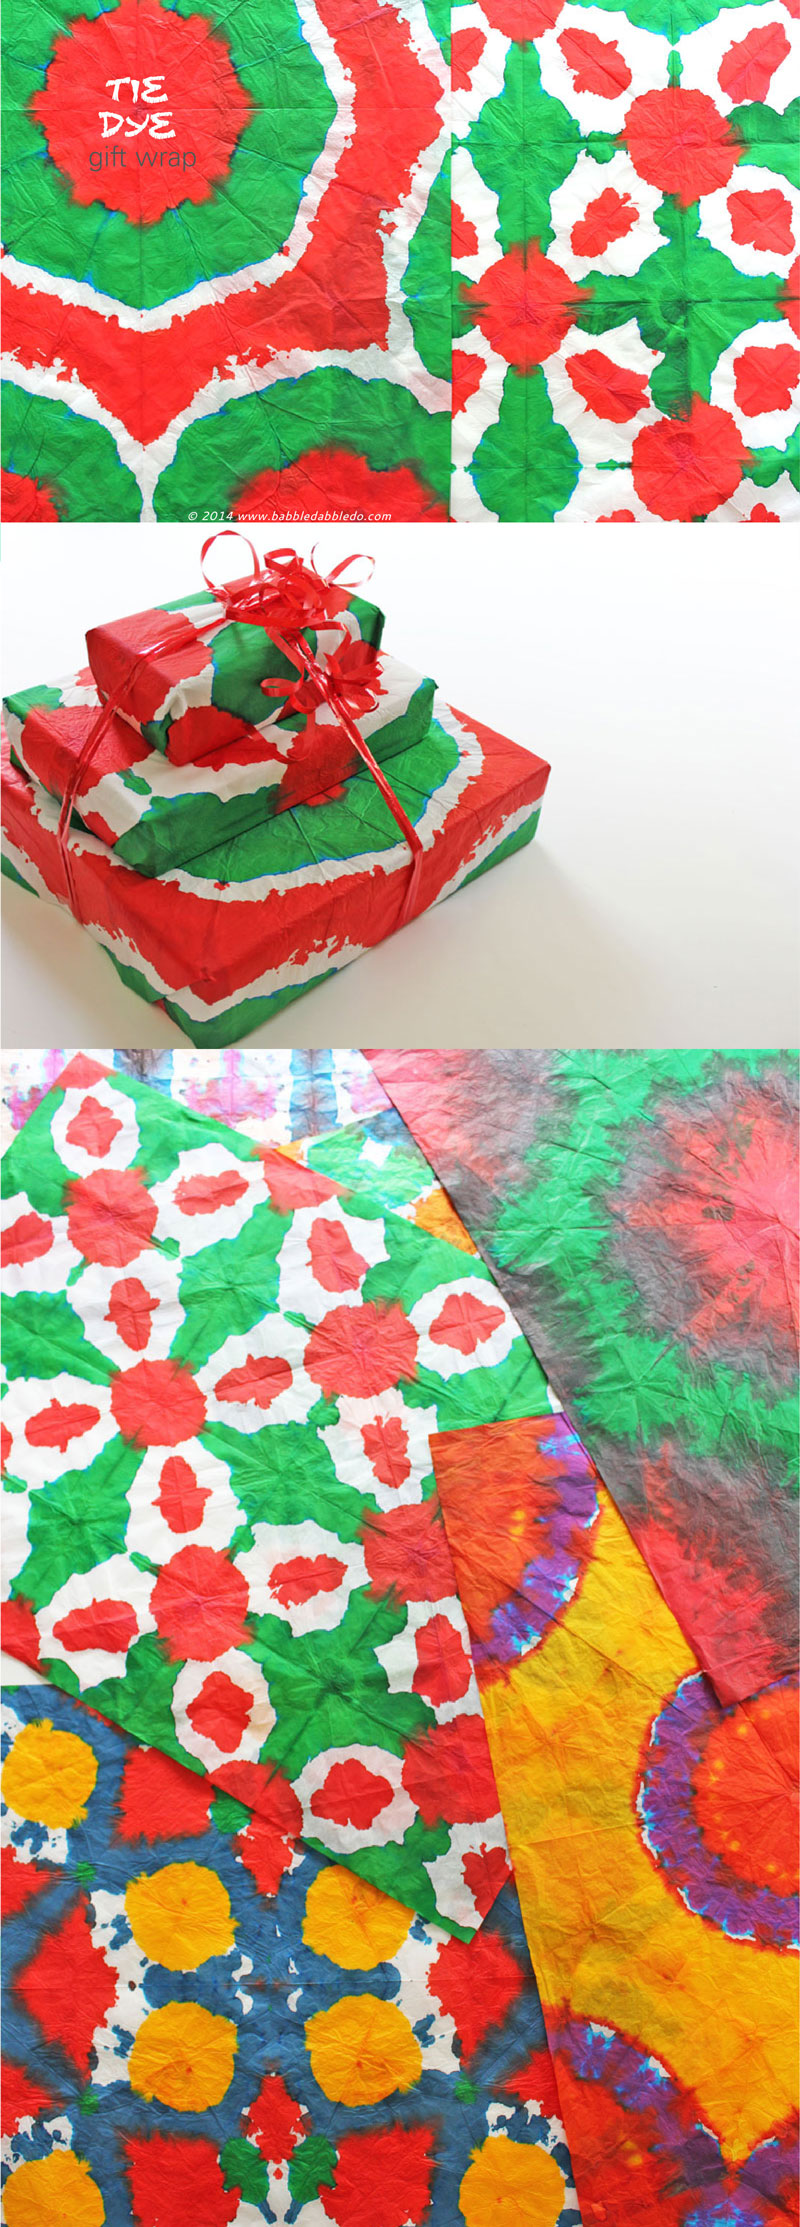 DIY Gift Wrapping Ideas: Tie Dyed Gift Wrap